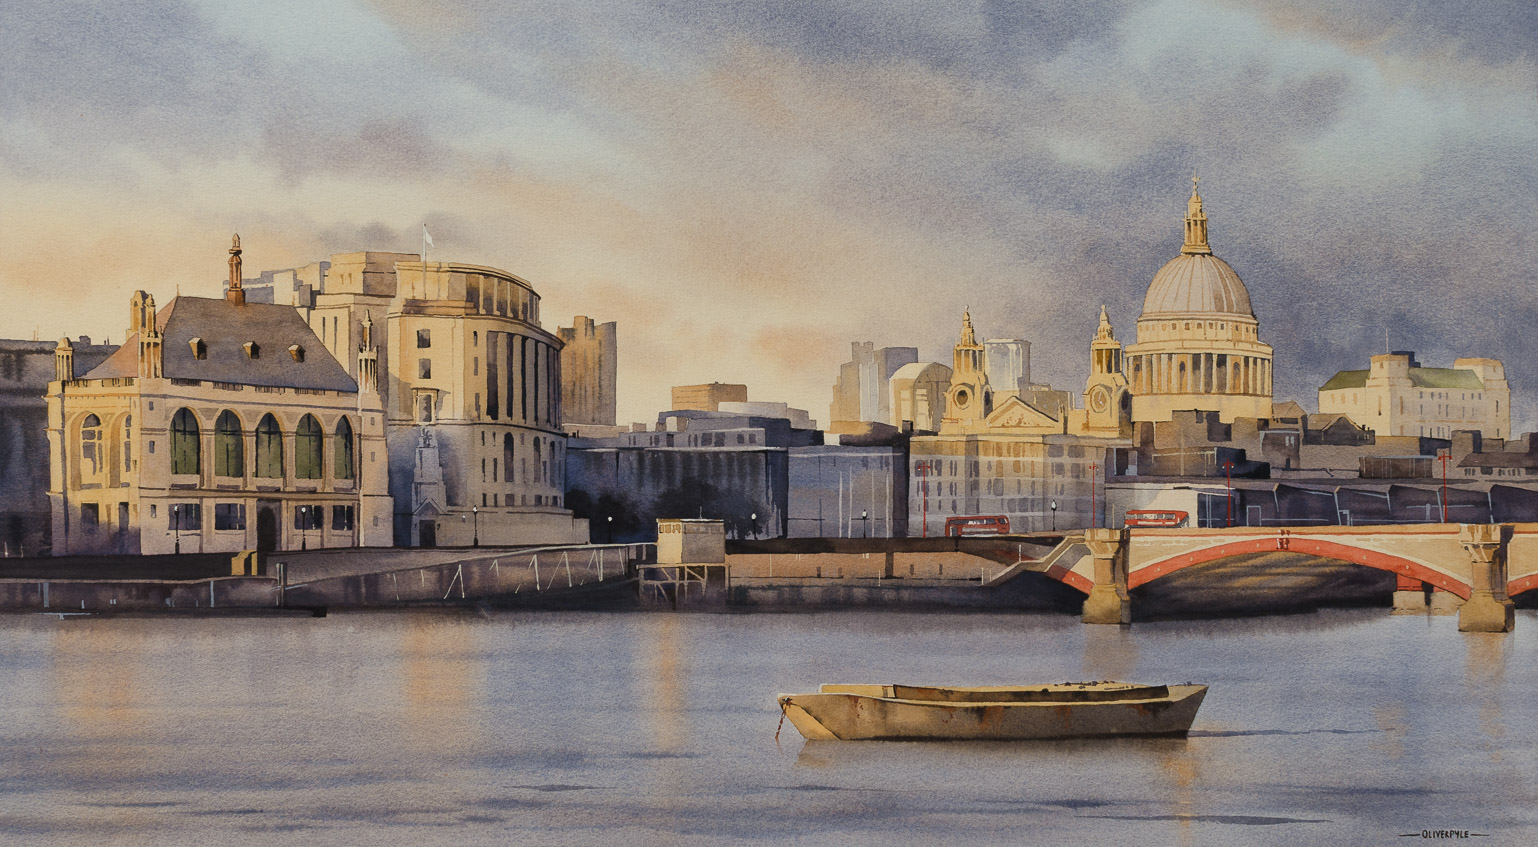 'The Golden Light of Evening, London by Oliver Pyle